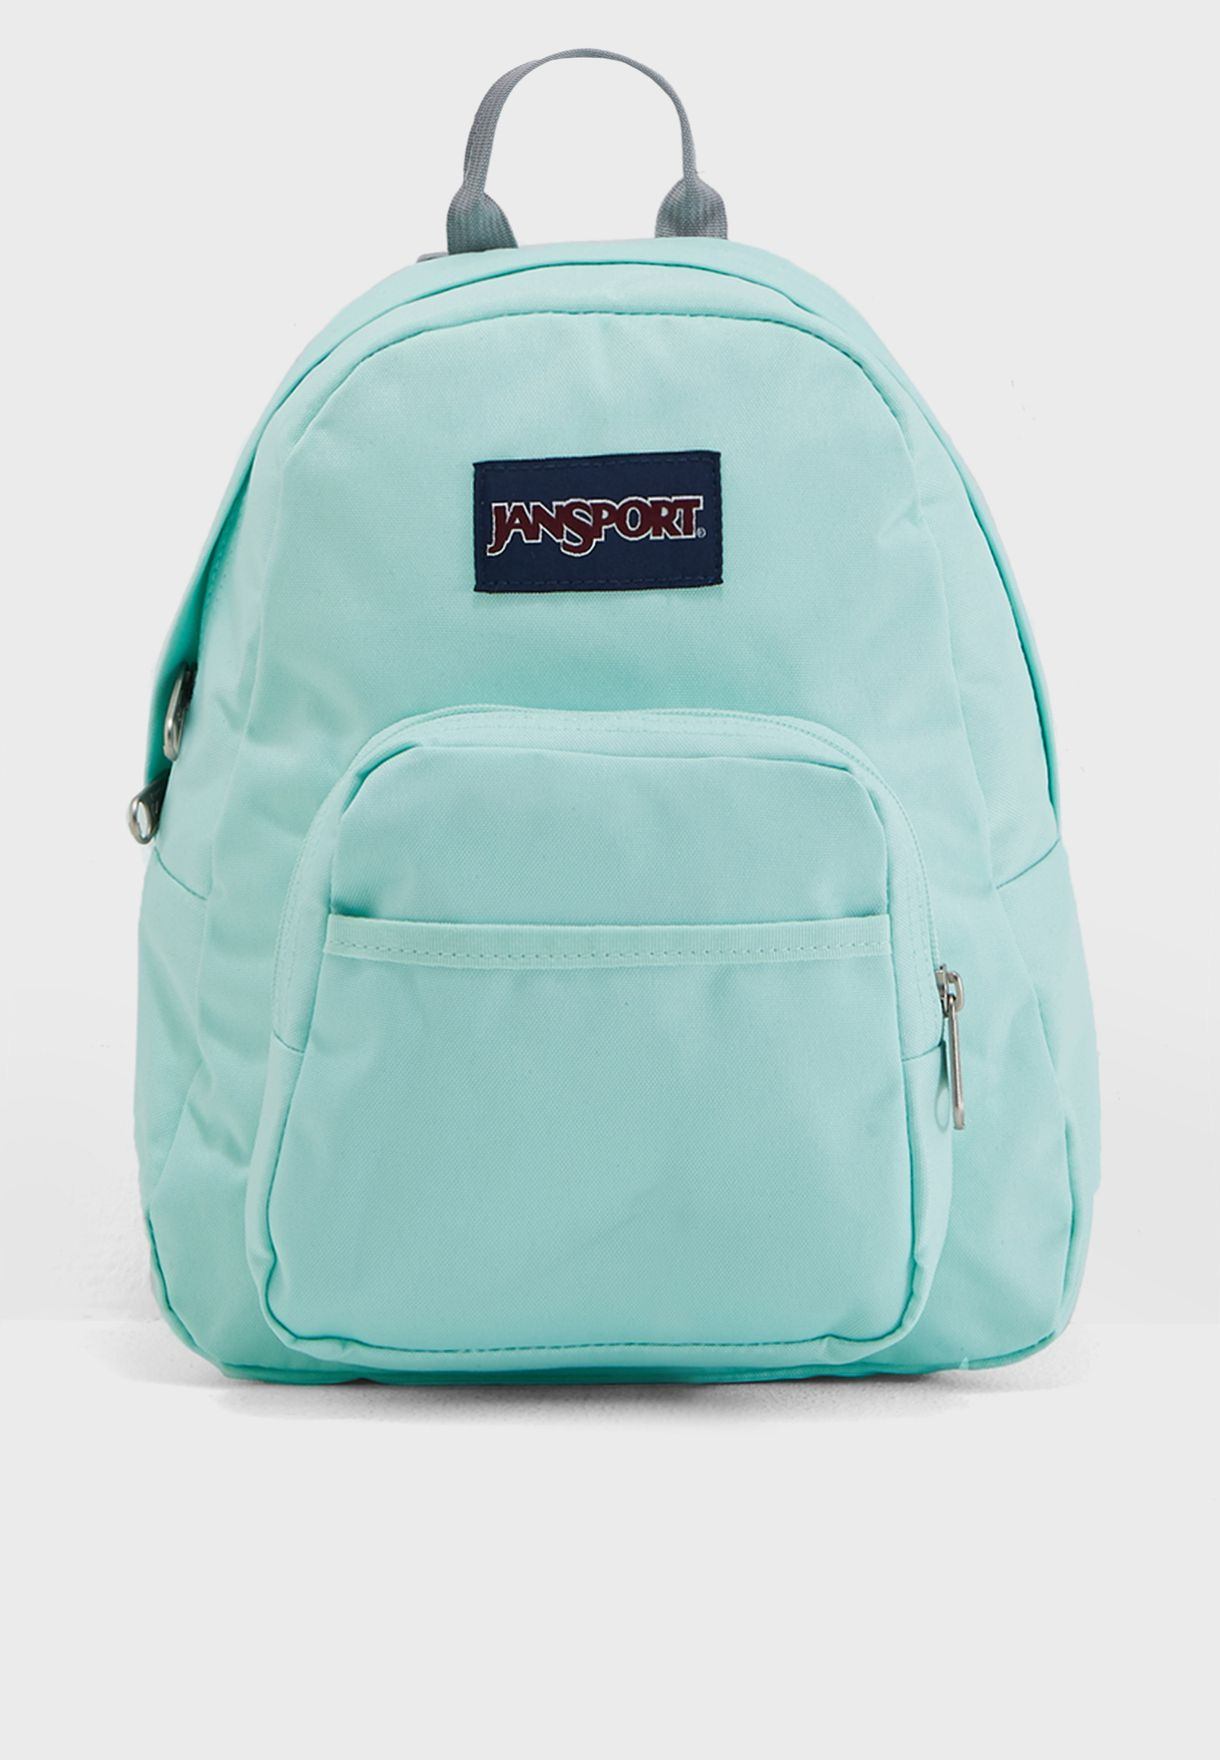 Kids Half Pint Backpack